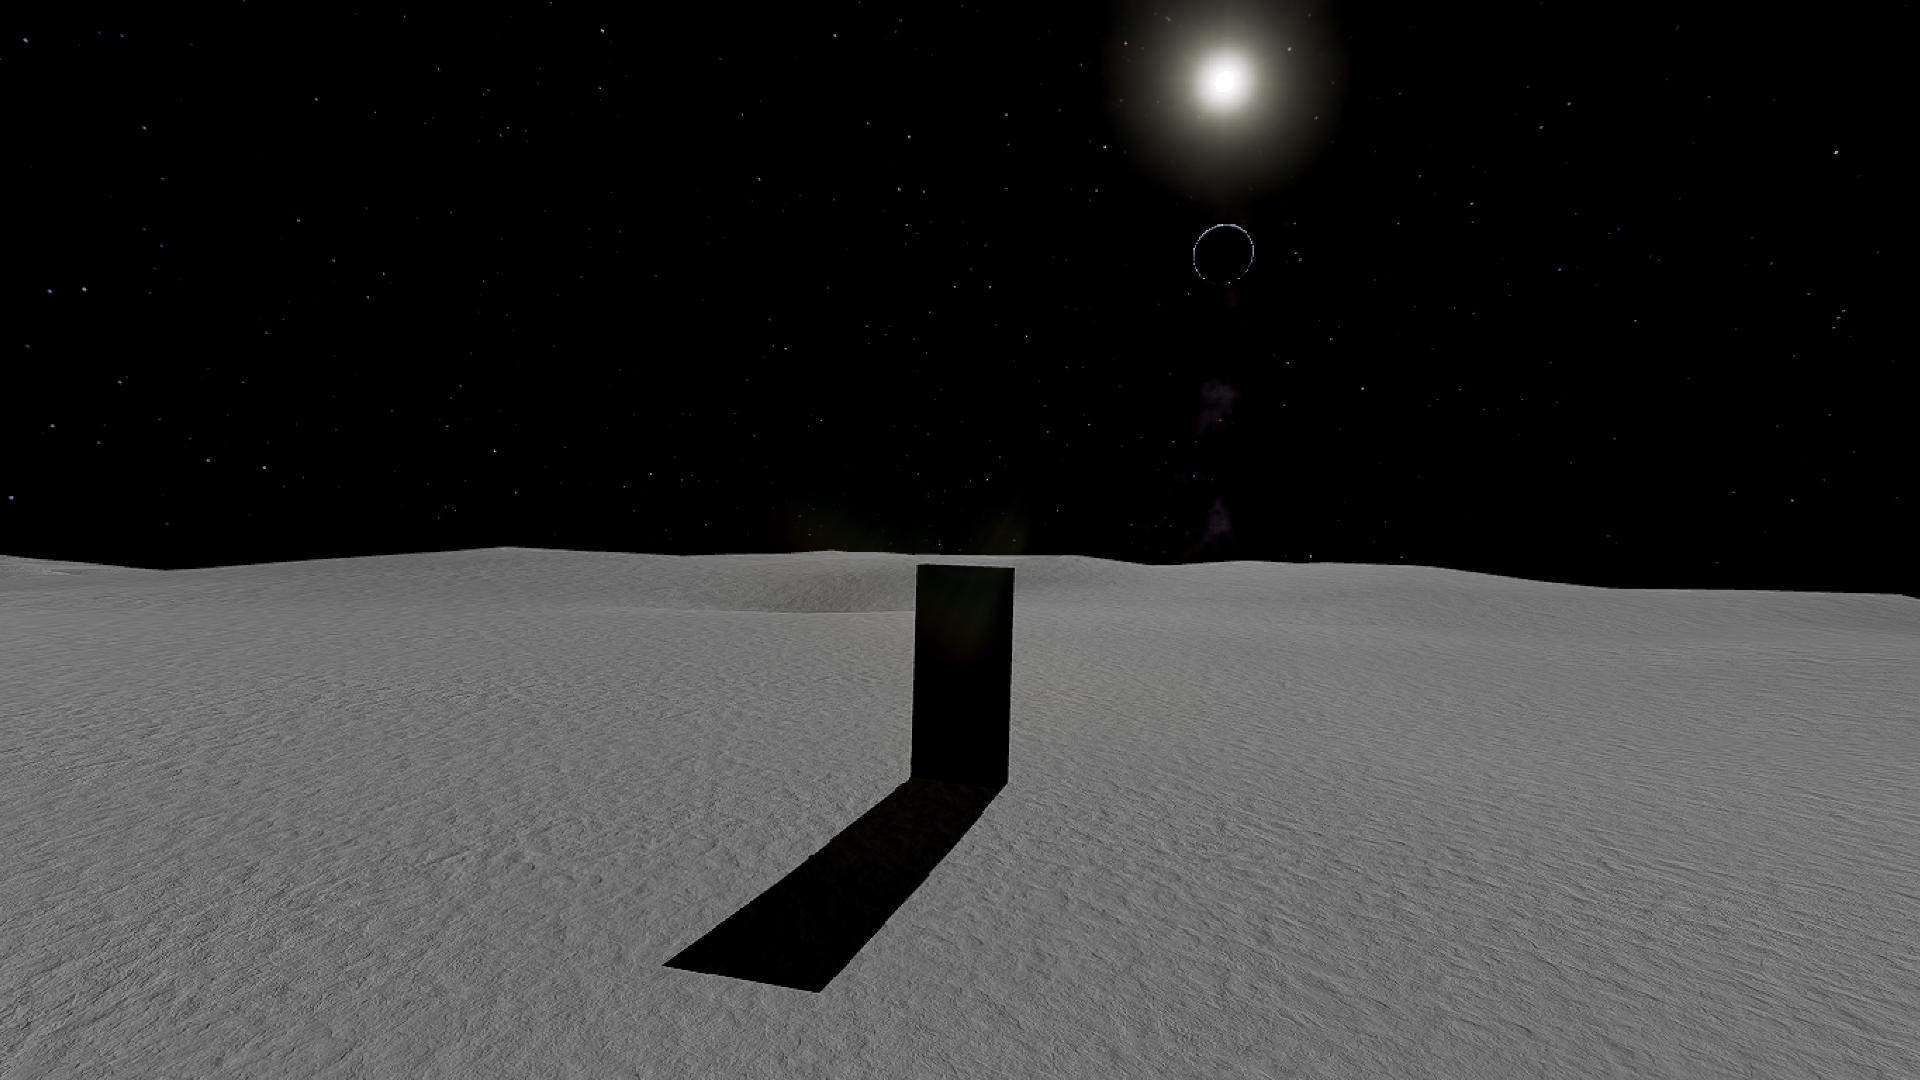 simplerockets 2 monolith 2001 a space odyssey monolith 2001 a space odyssey